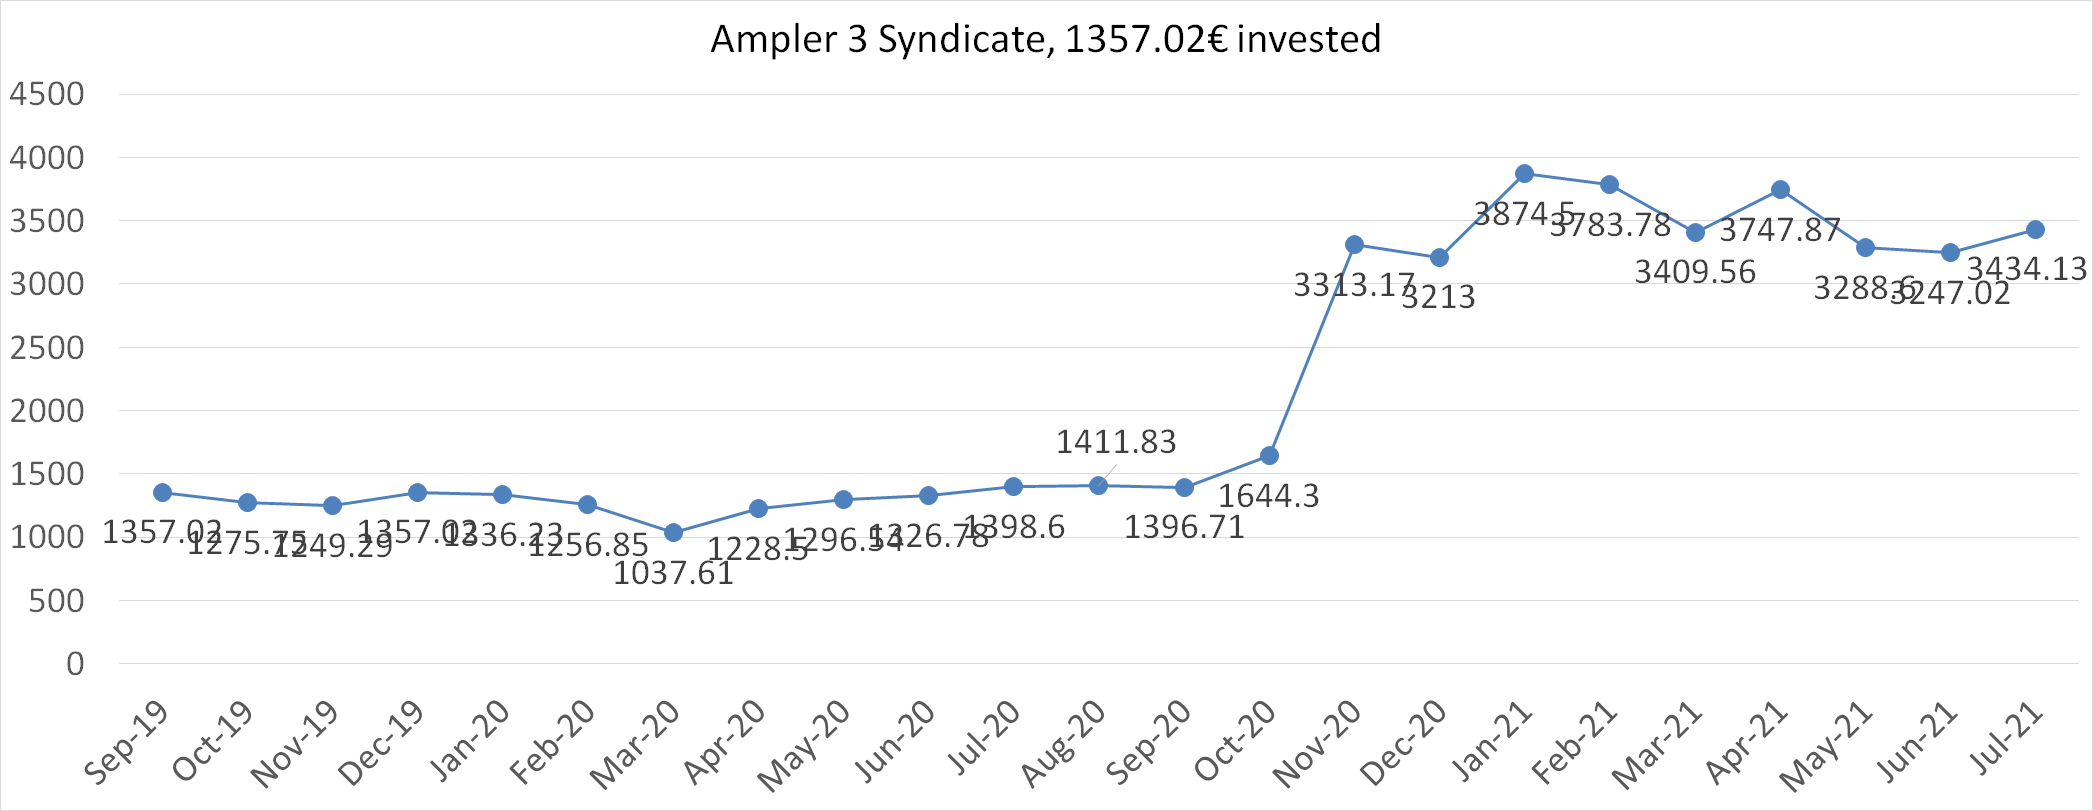 Ampler 3 syndicate worth july 2021